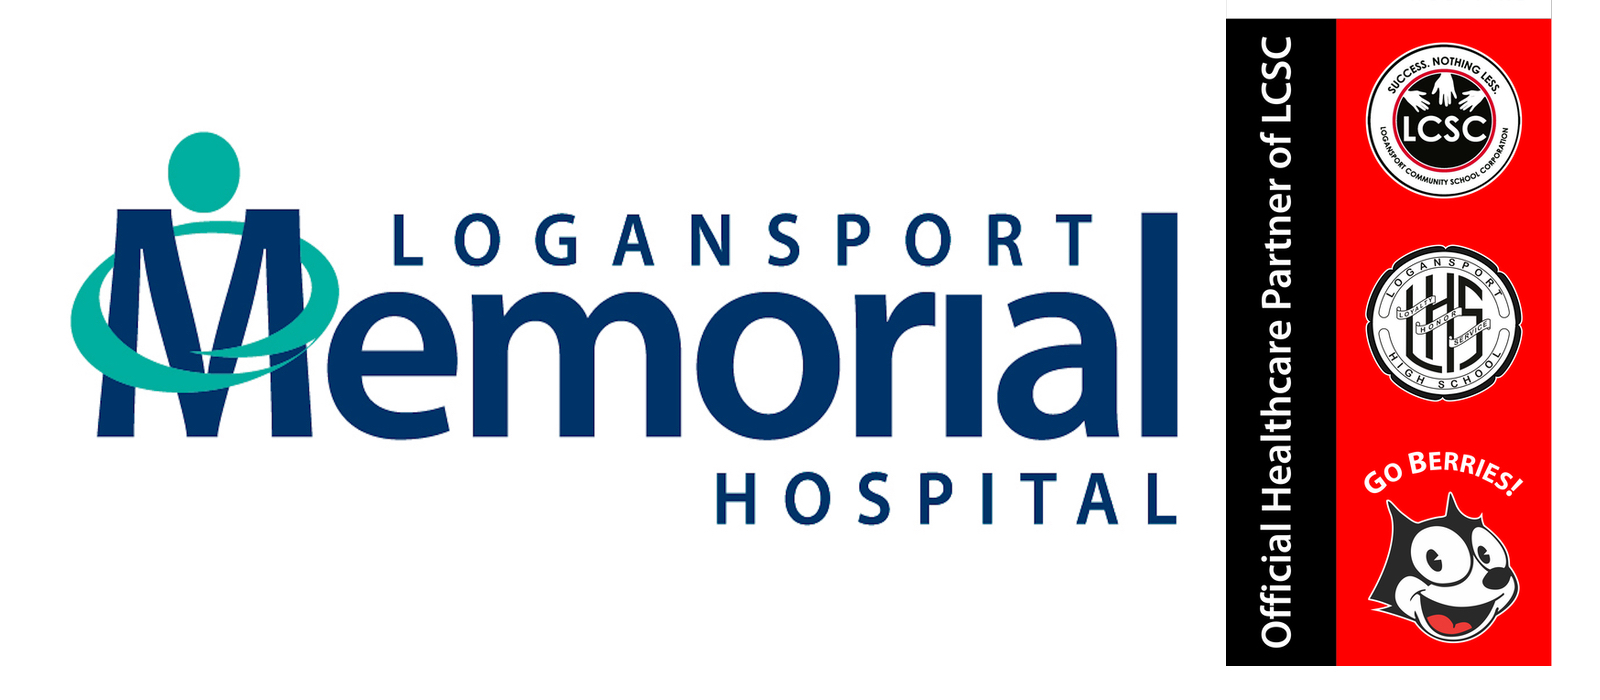 Logansport Memorial Hospital Healthcare Partner